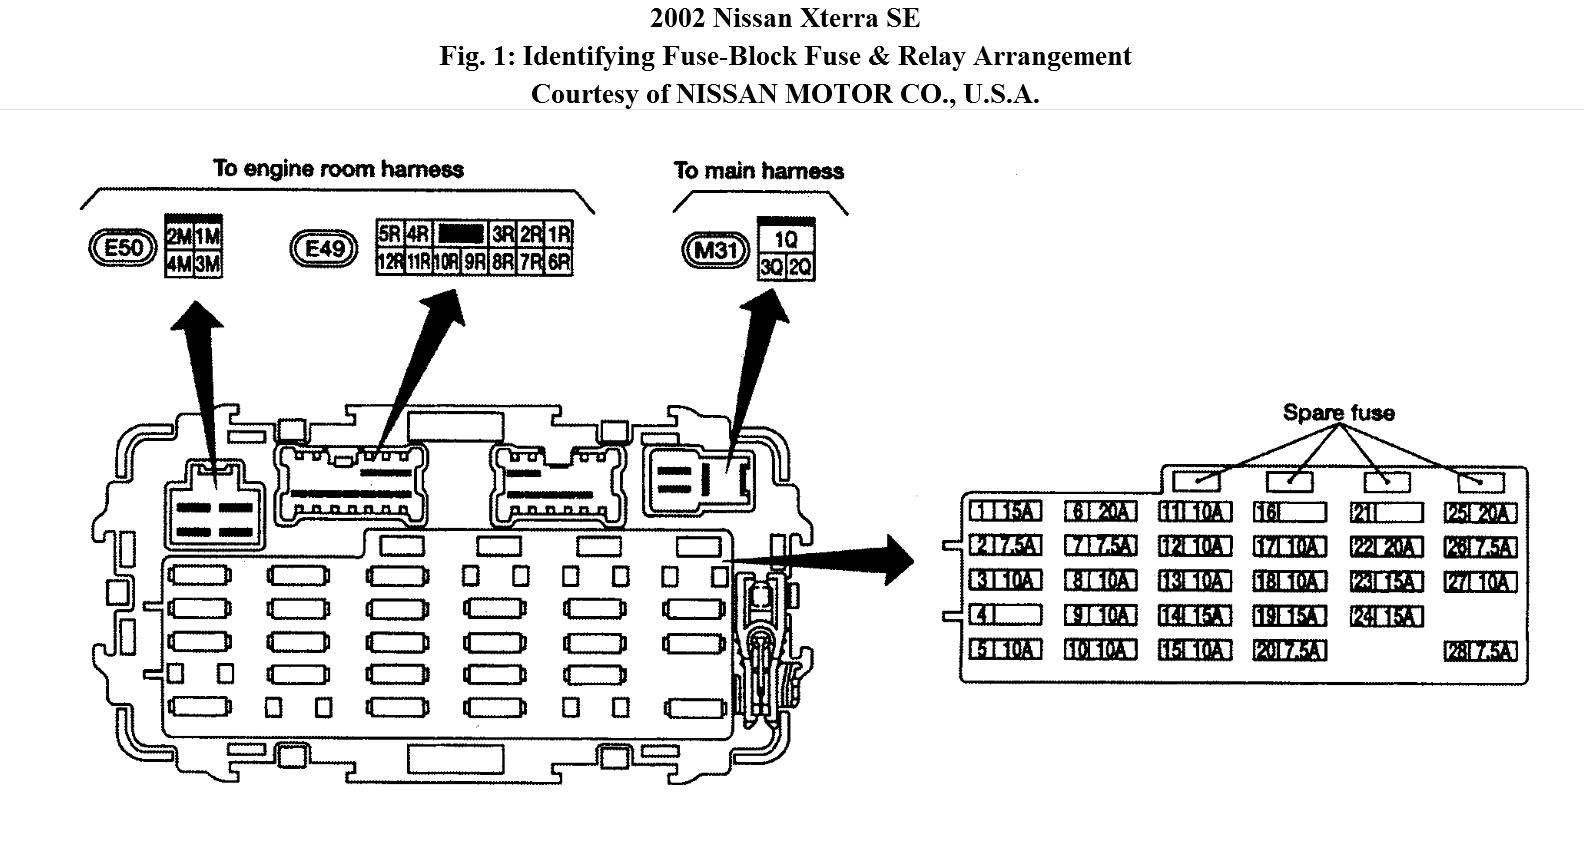 2002 nissan xterra fuse box diagram   35 wiring diagram